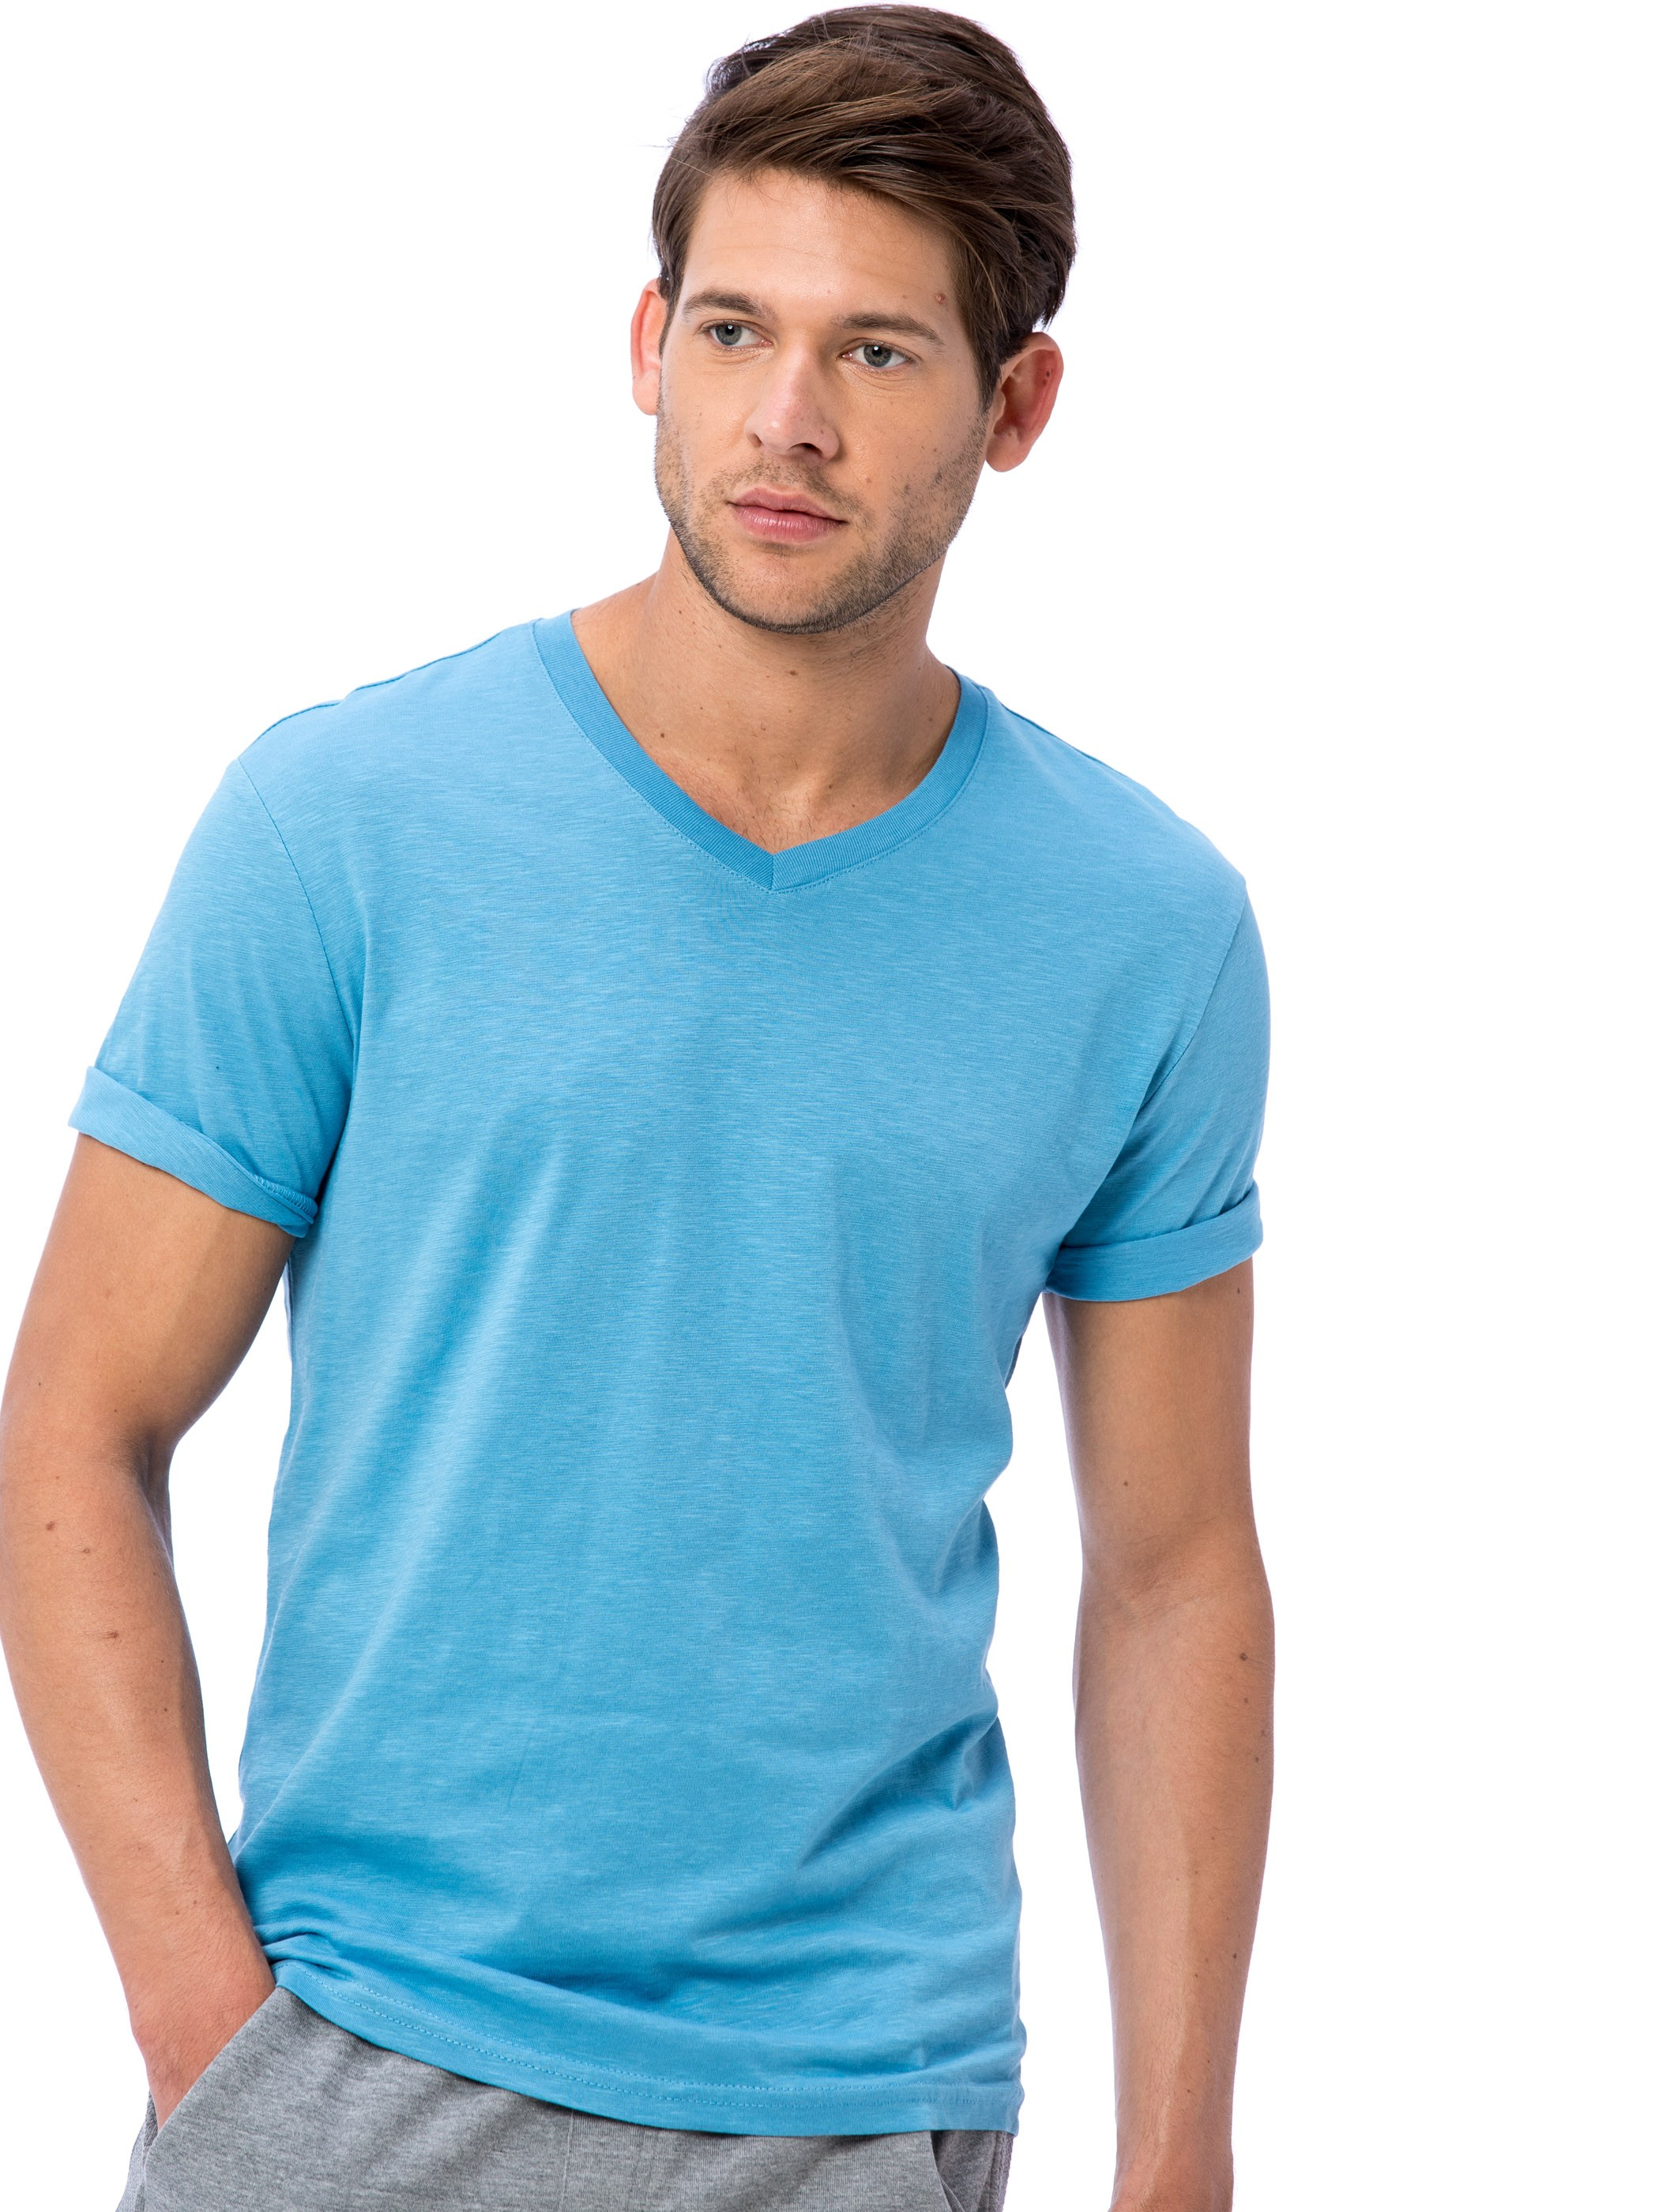 BLUE - V-Neck and Short Sleeve Cotton T-Shirt - 8S9385Z8